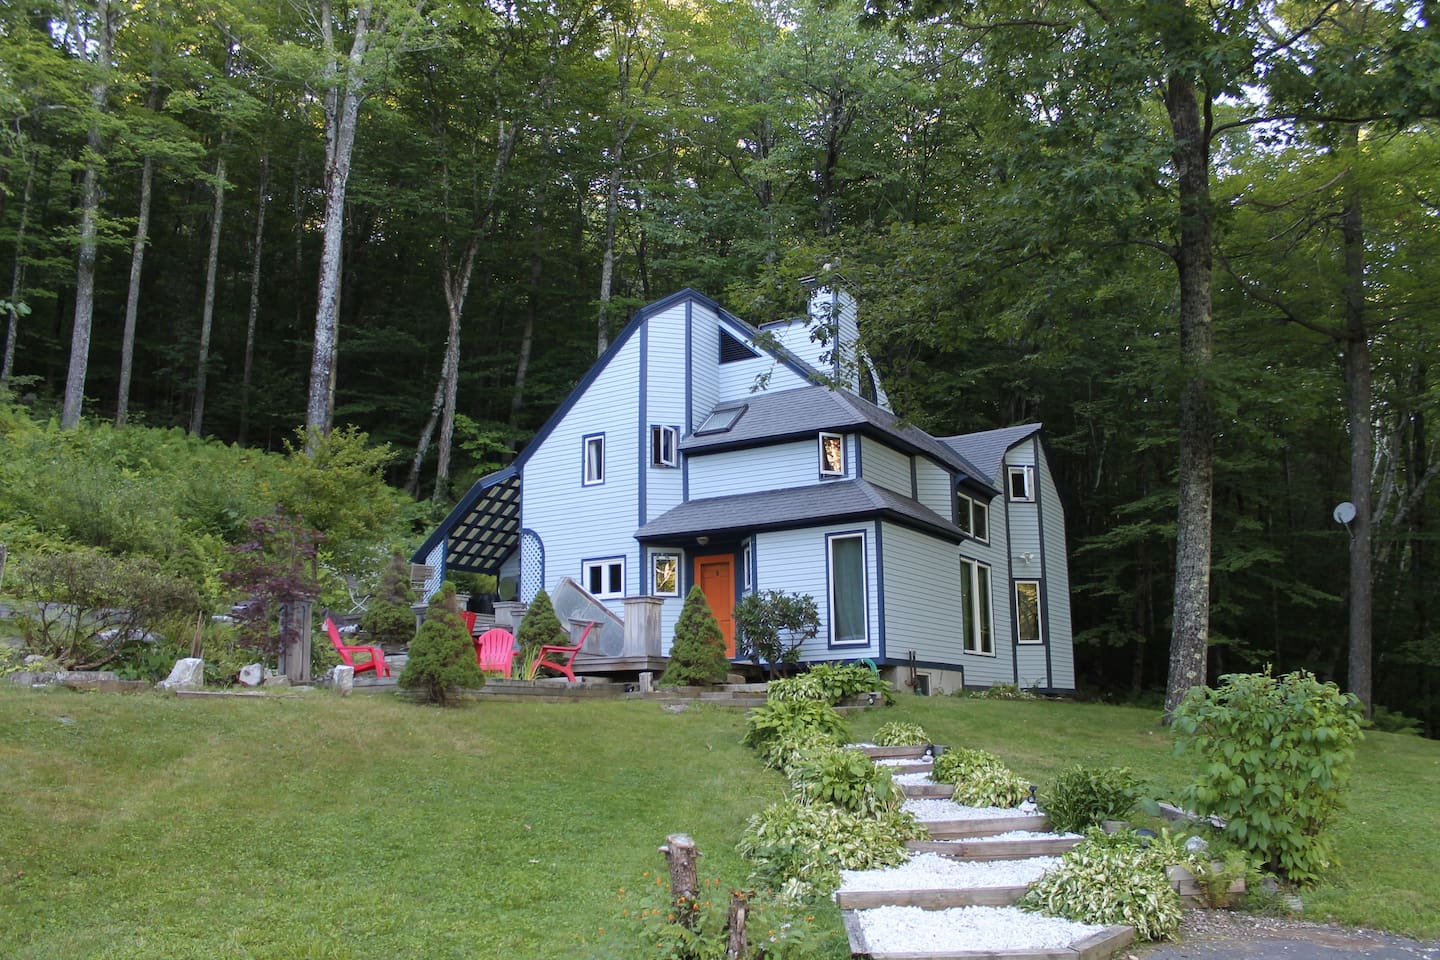 Nestled in the Green Mountains of Southern Vermont, with mountain and pond views.